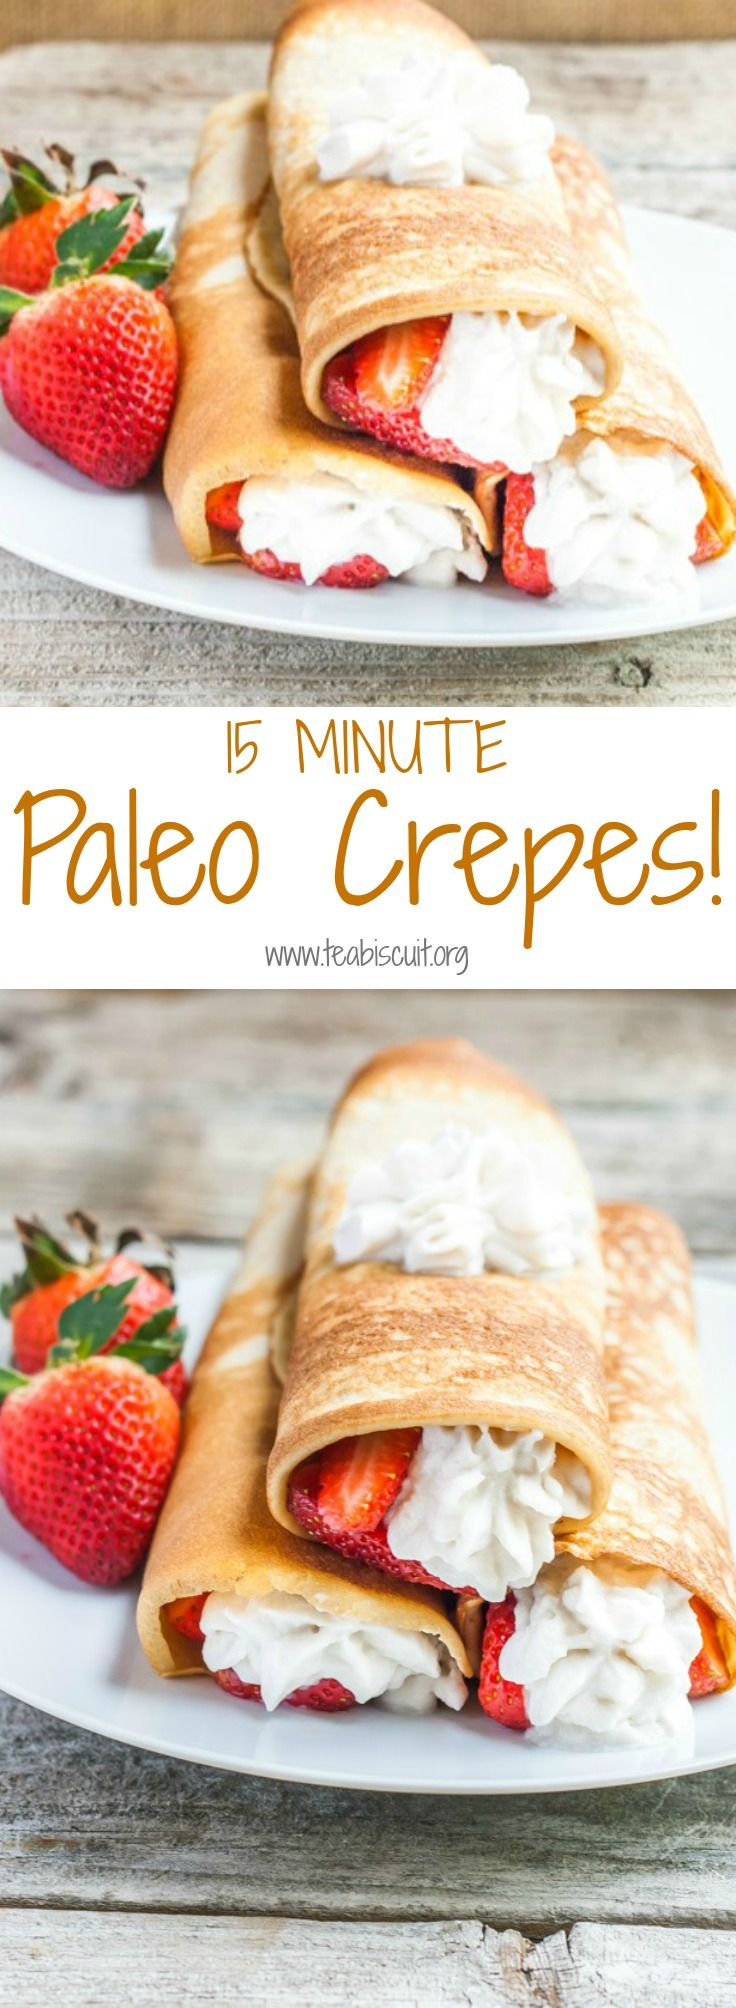 So fast and easy, make Paleo crepes in less than 15 Minutes! A Delicious Paelo D…